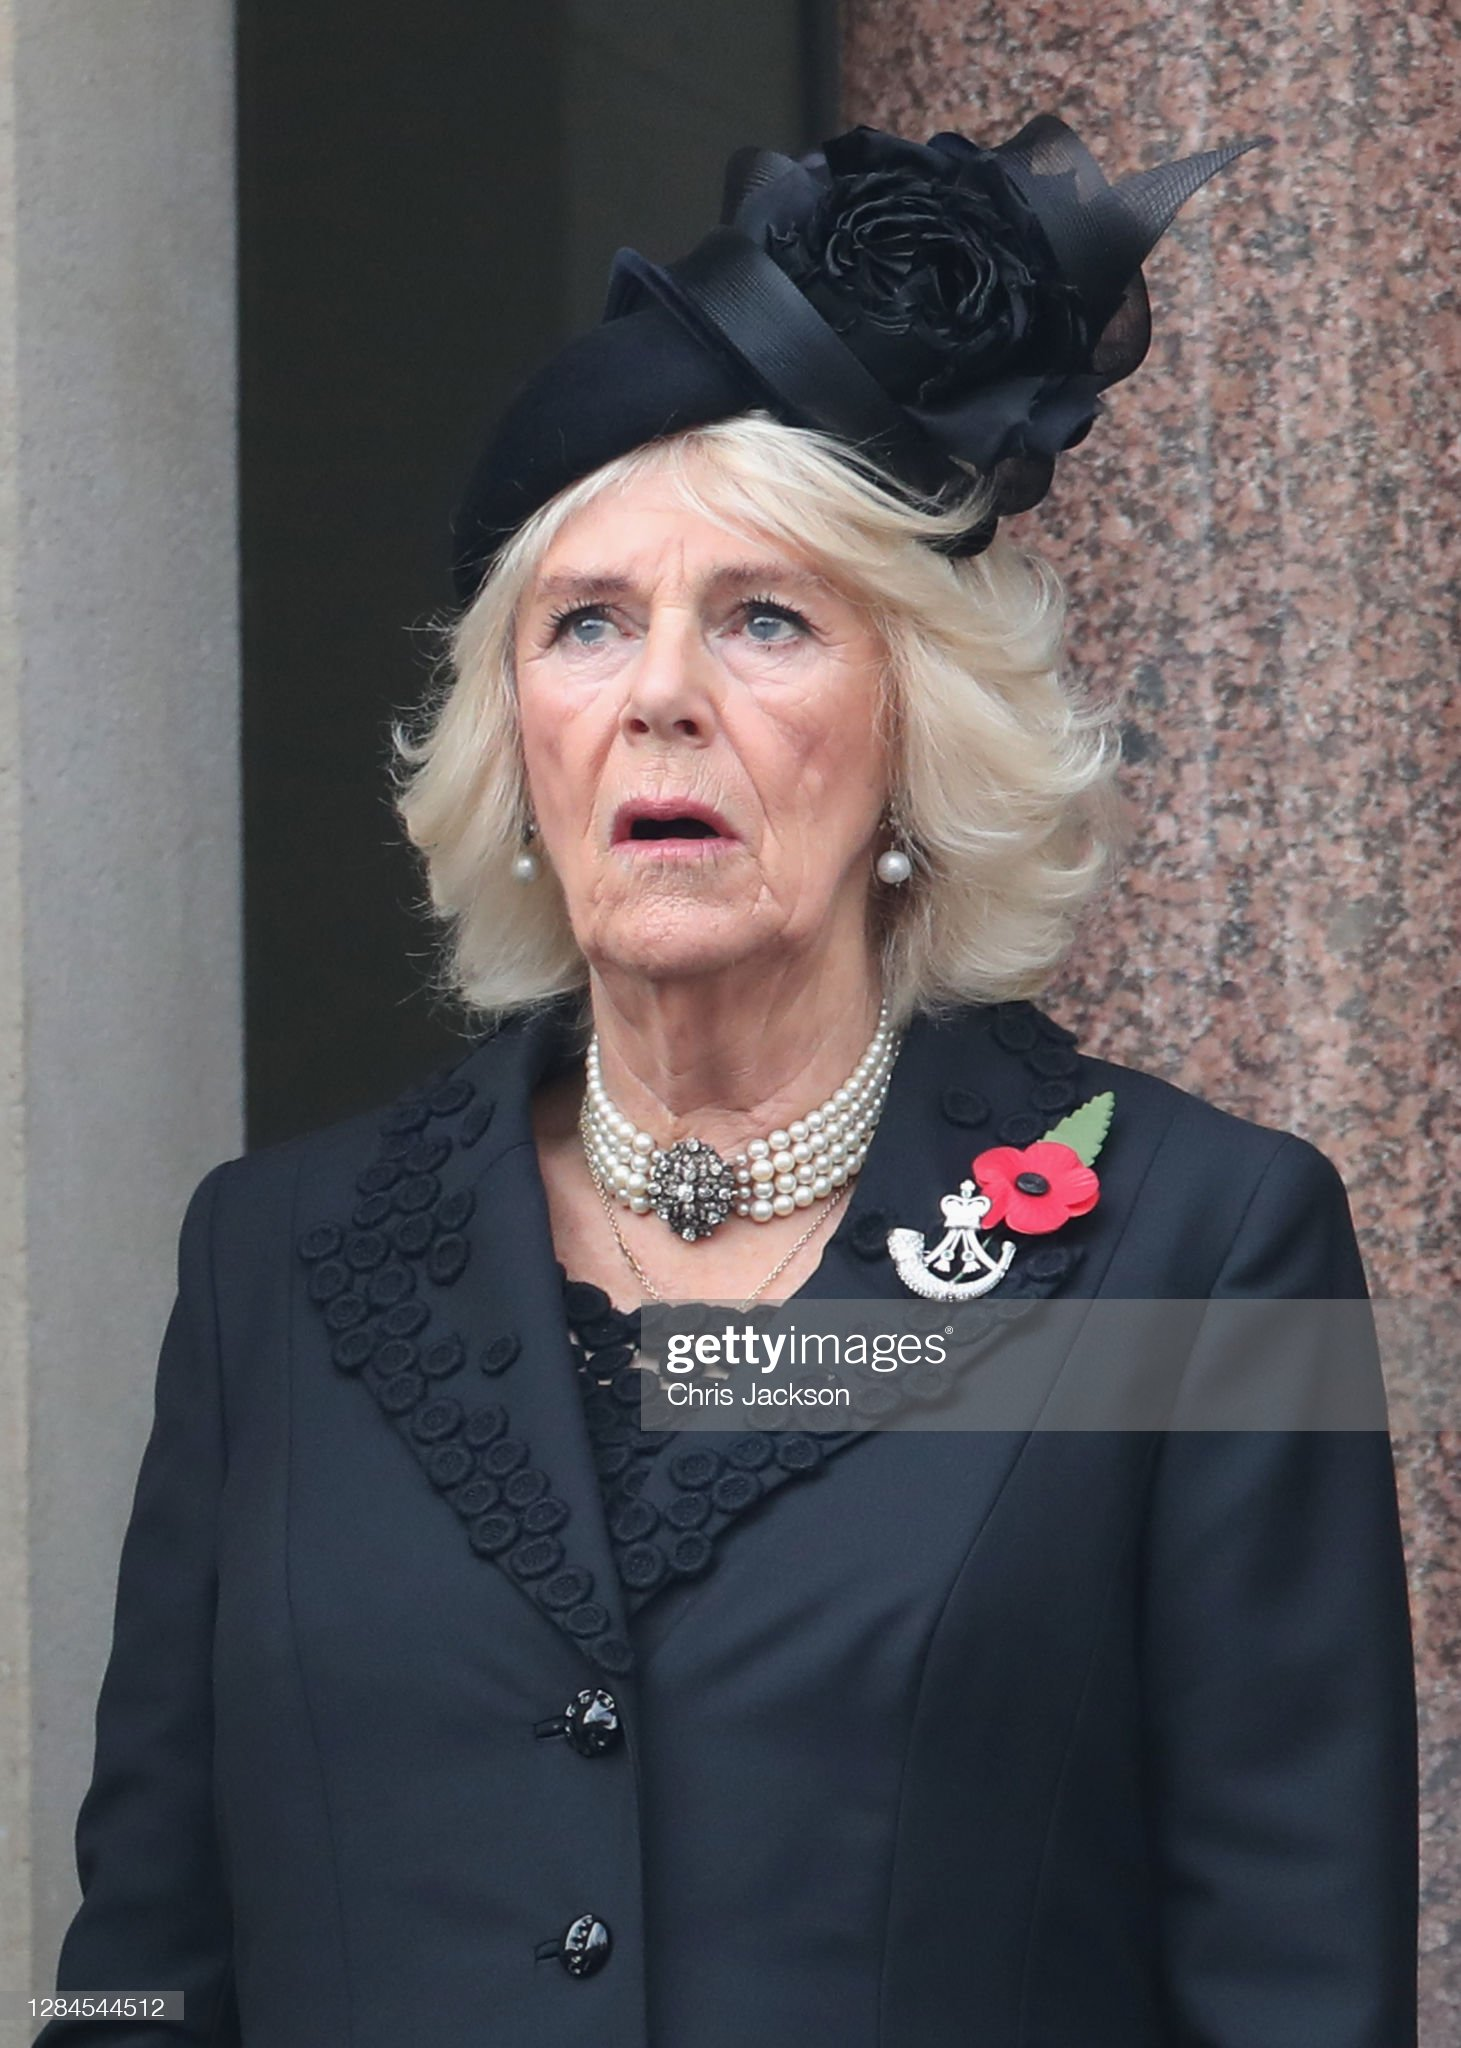 https://media.gettyimages.com/photos/camilla-duchess-of-cornwall-during-the-national-service-of-at-the-picture-id1284544512?s=2048x2048